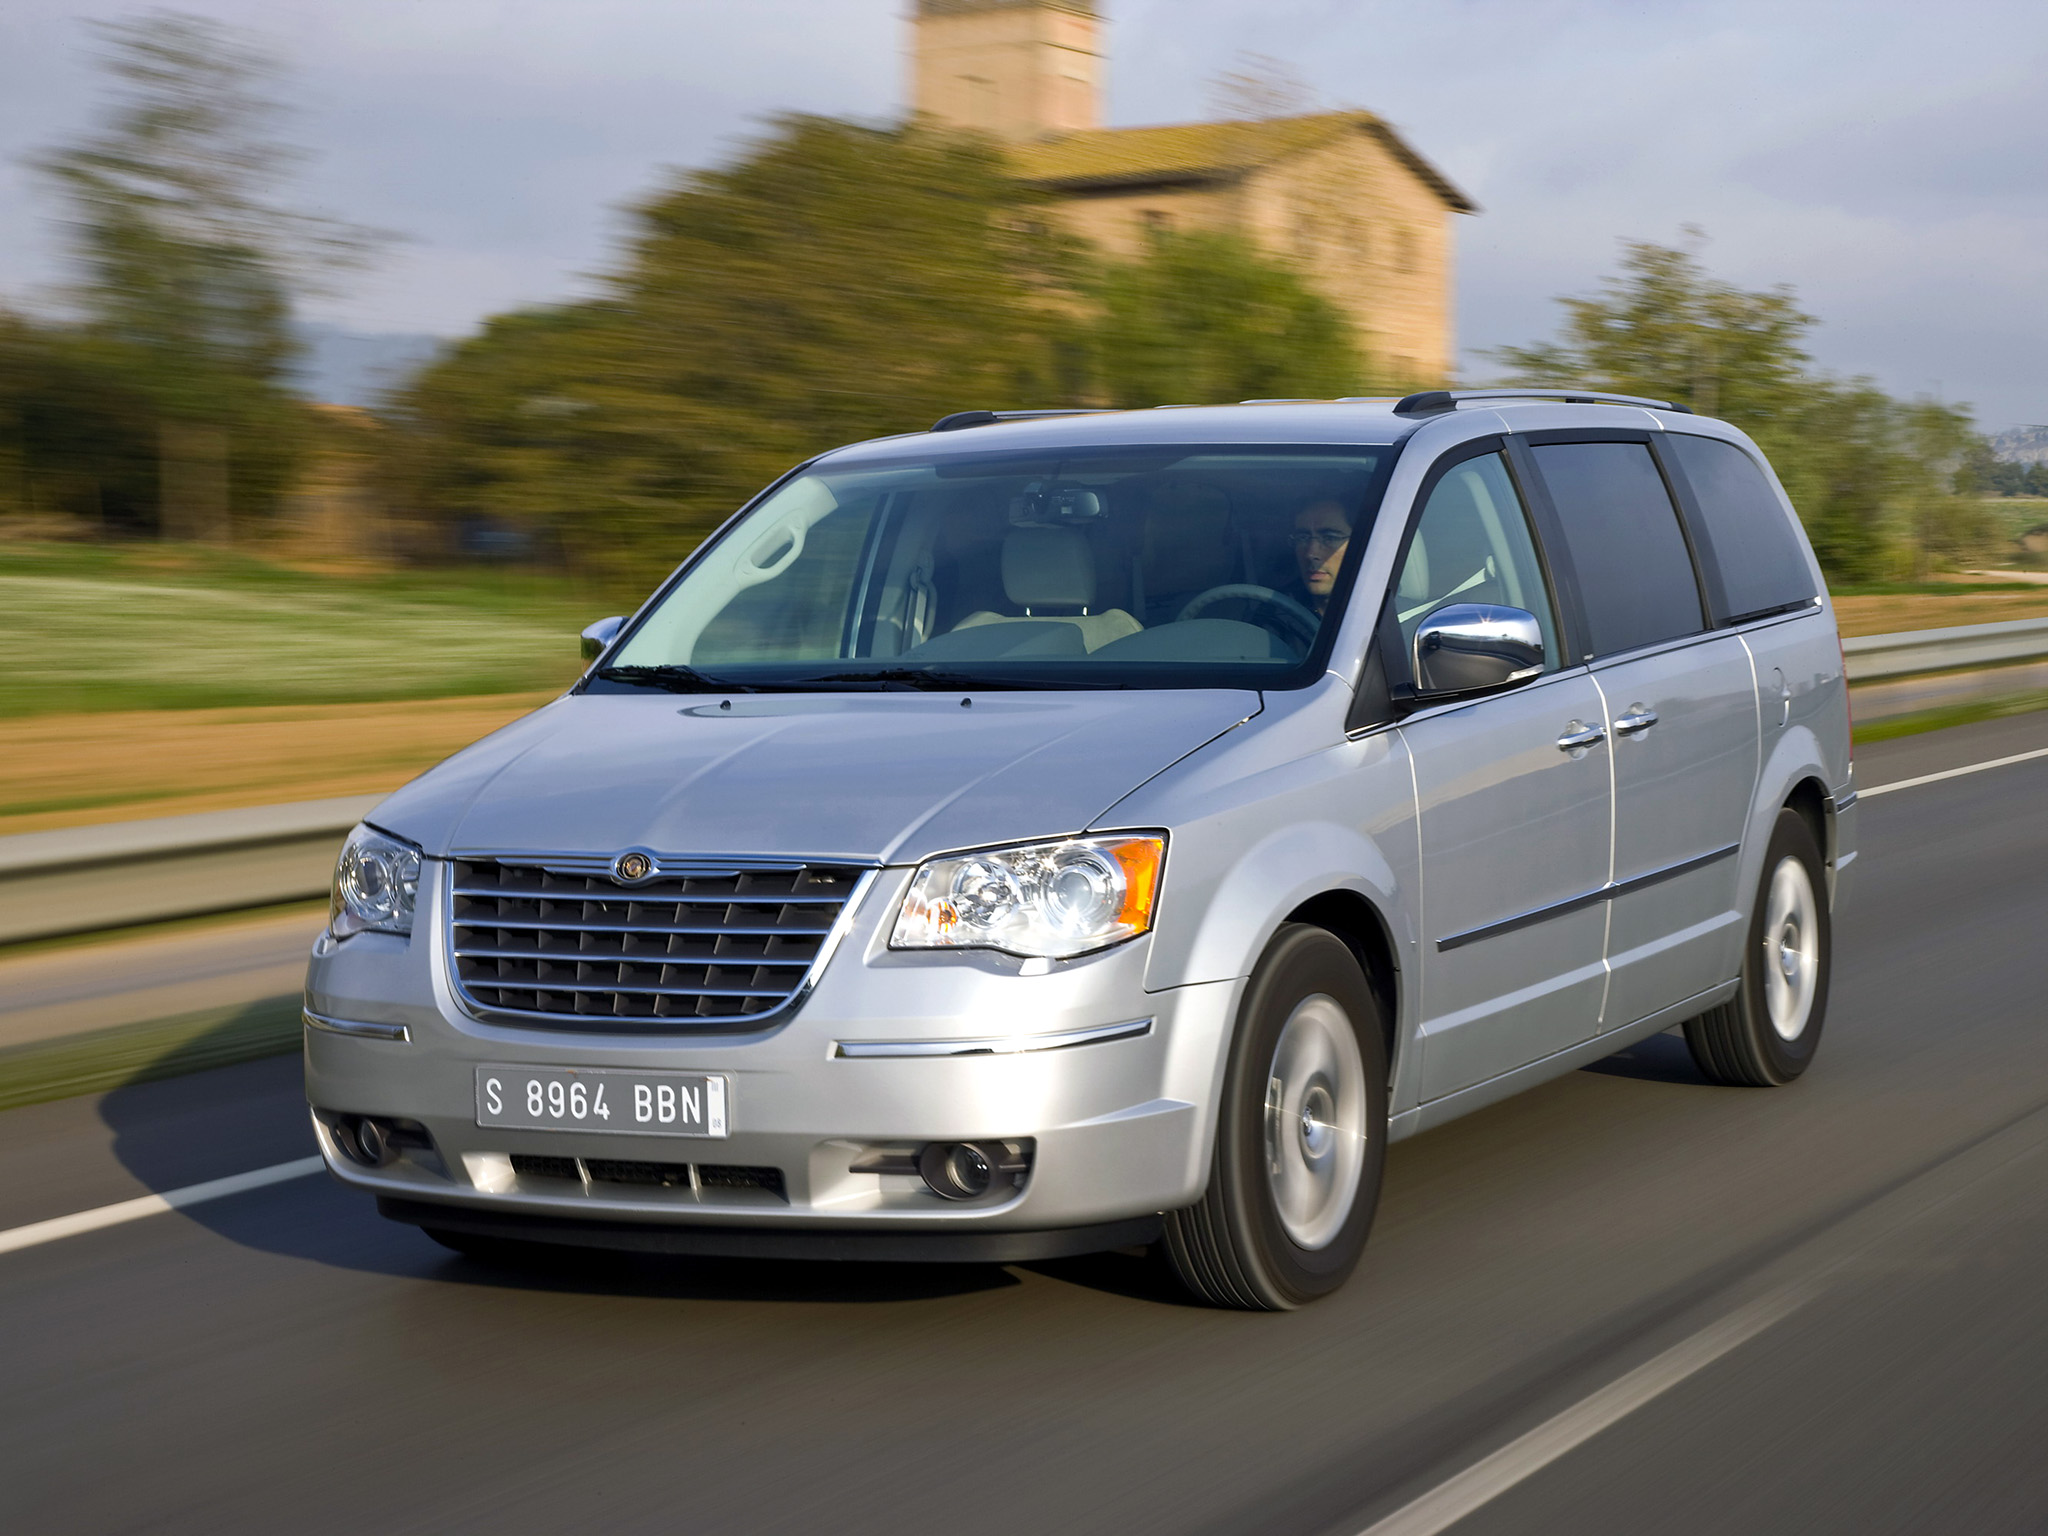 Chrysler Grand Voyager 3.6 2011 photo - 2